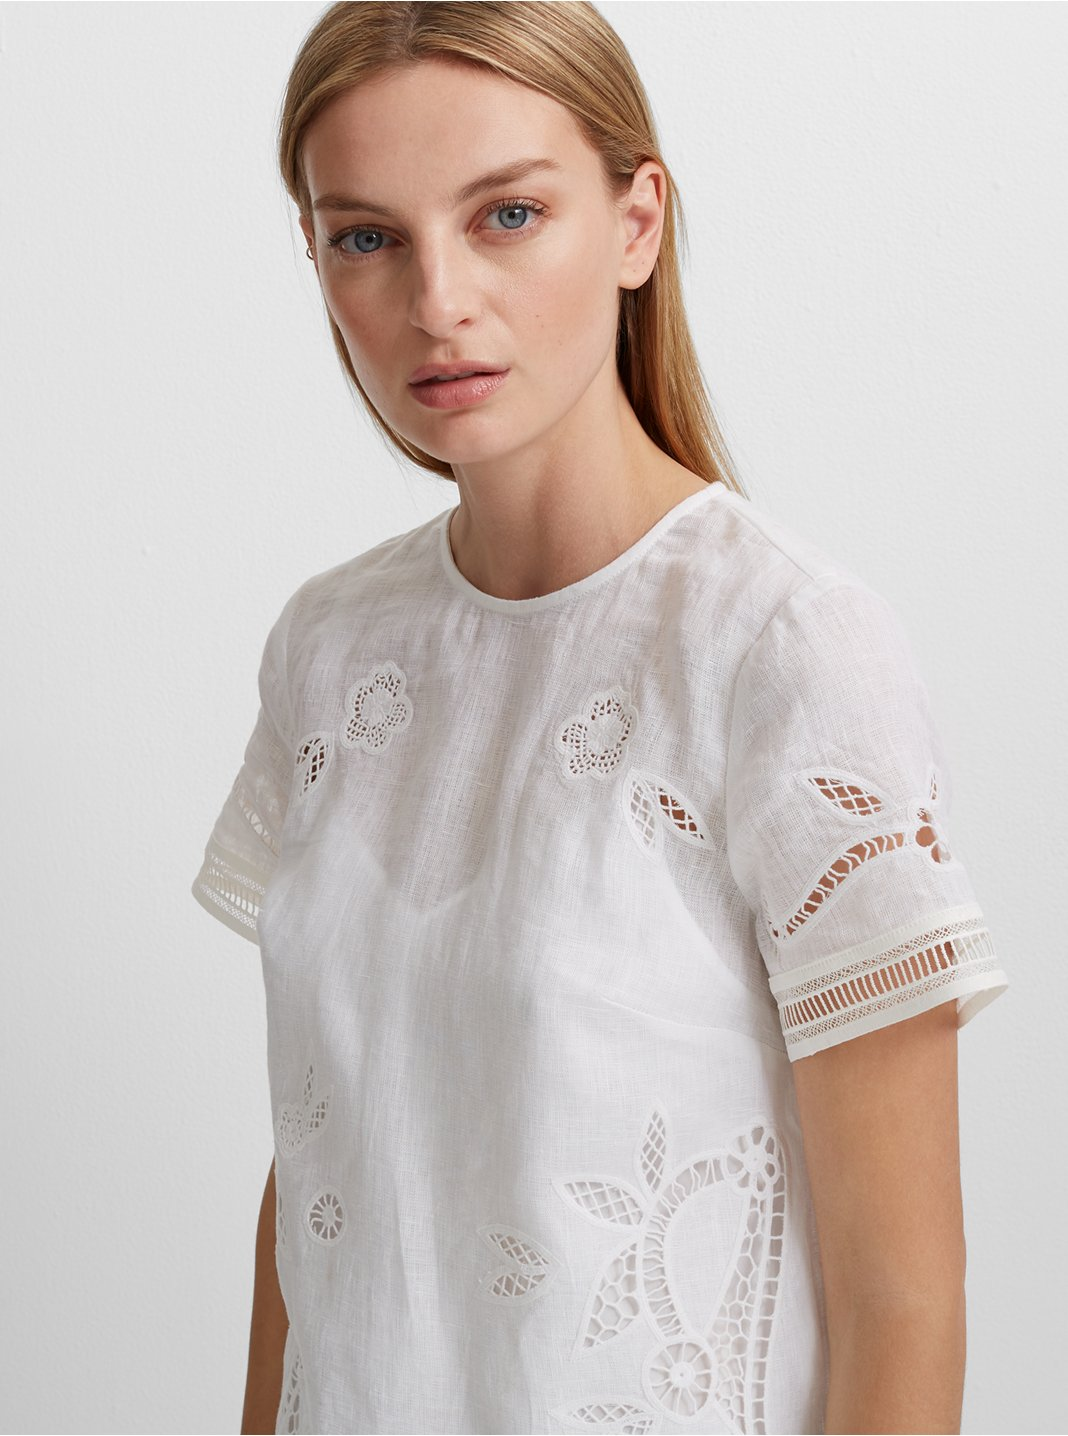 Luceenie Linen Dress